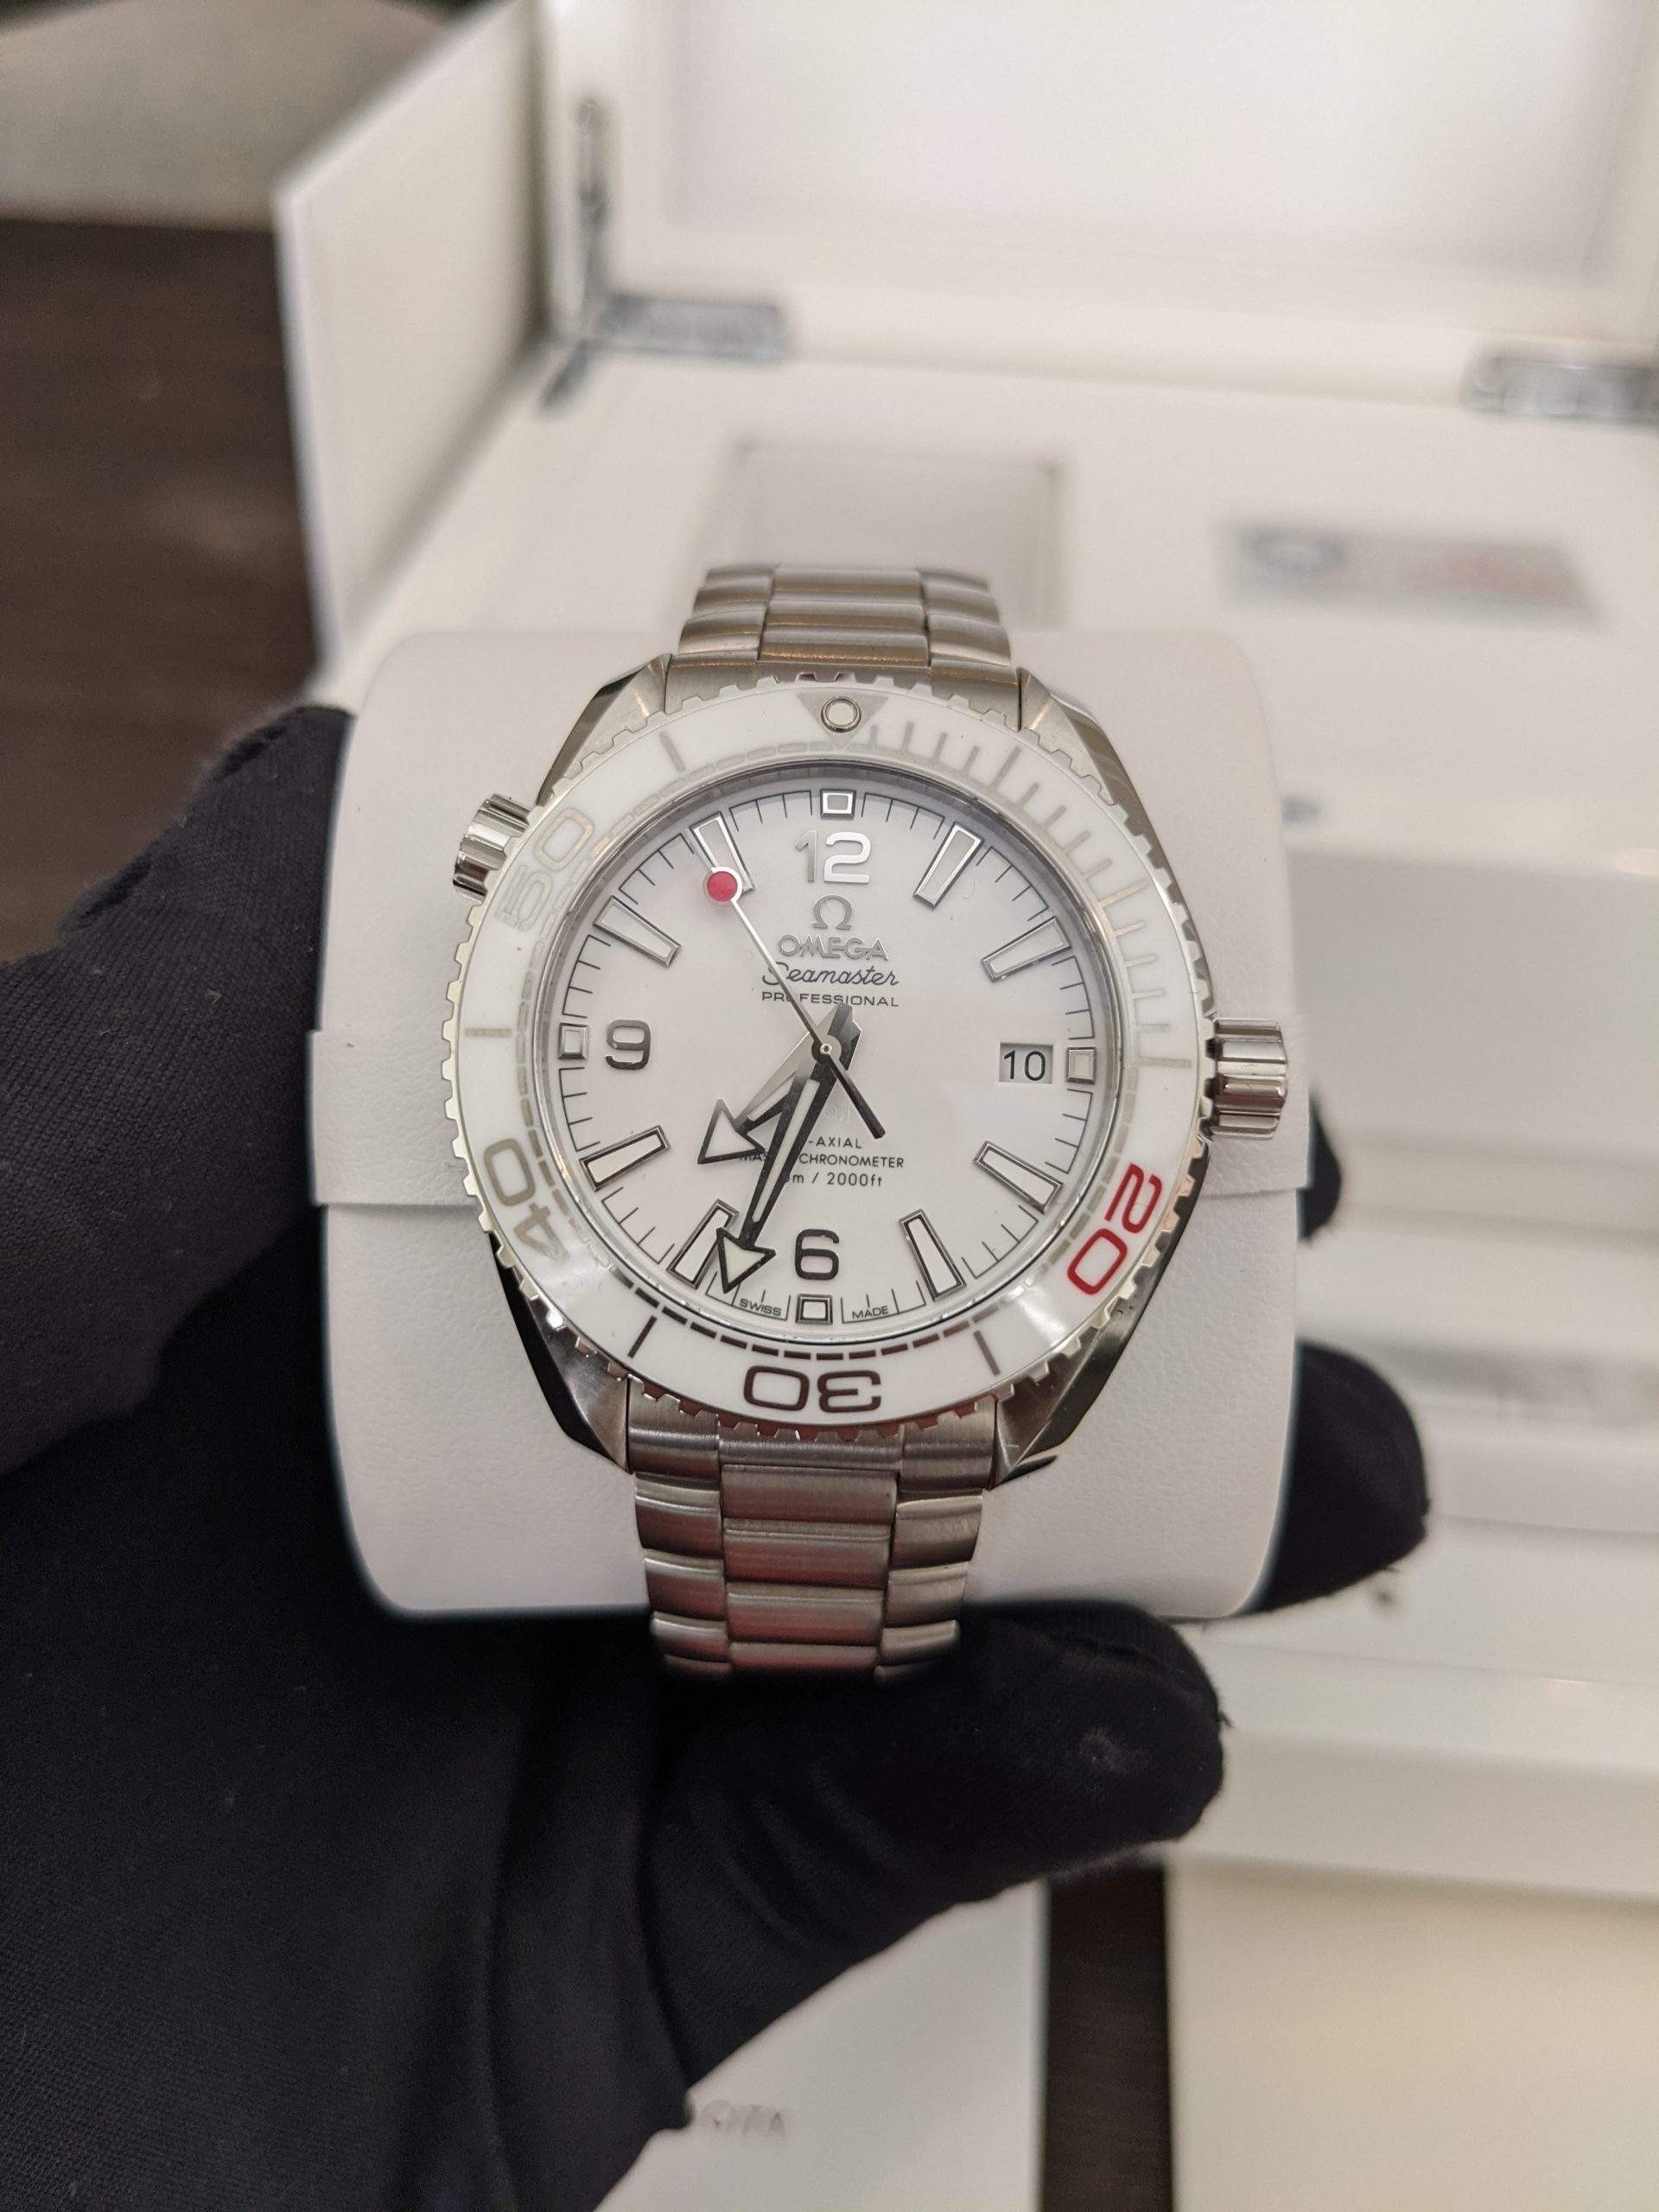 Omega Seamaster Planet Ocean 600M Tokyo Limited Edition